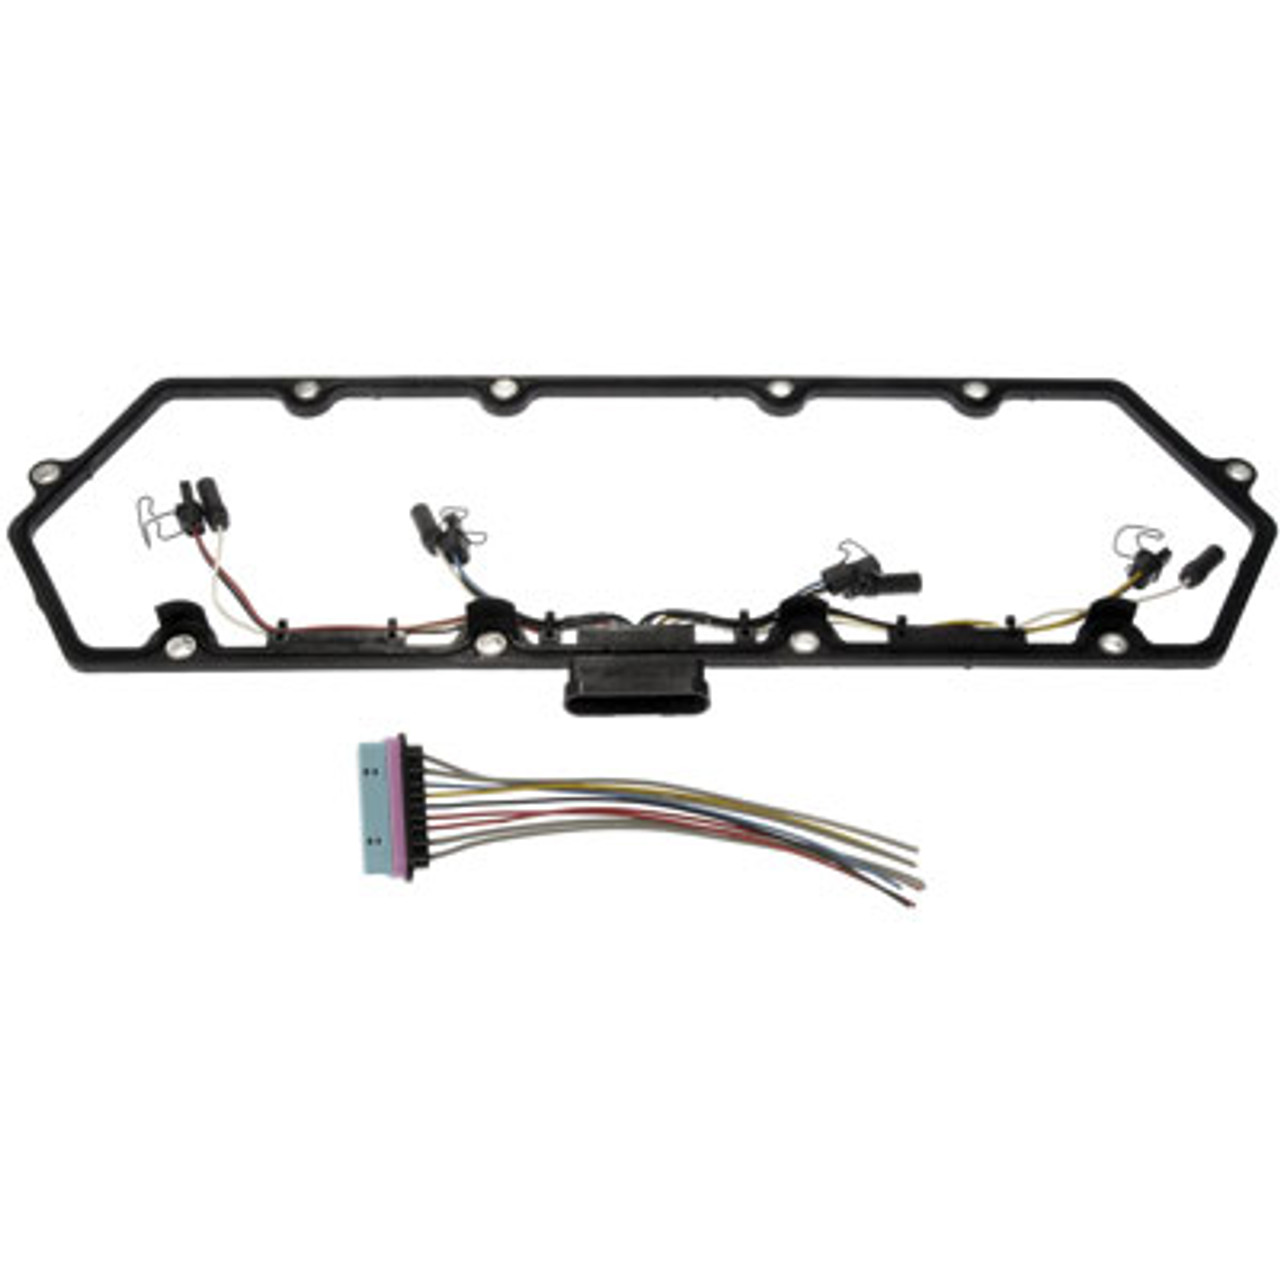 Dorman 99-03 Valve Cover Gasket Kit w/Fuel Injector Wiring Harness on